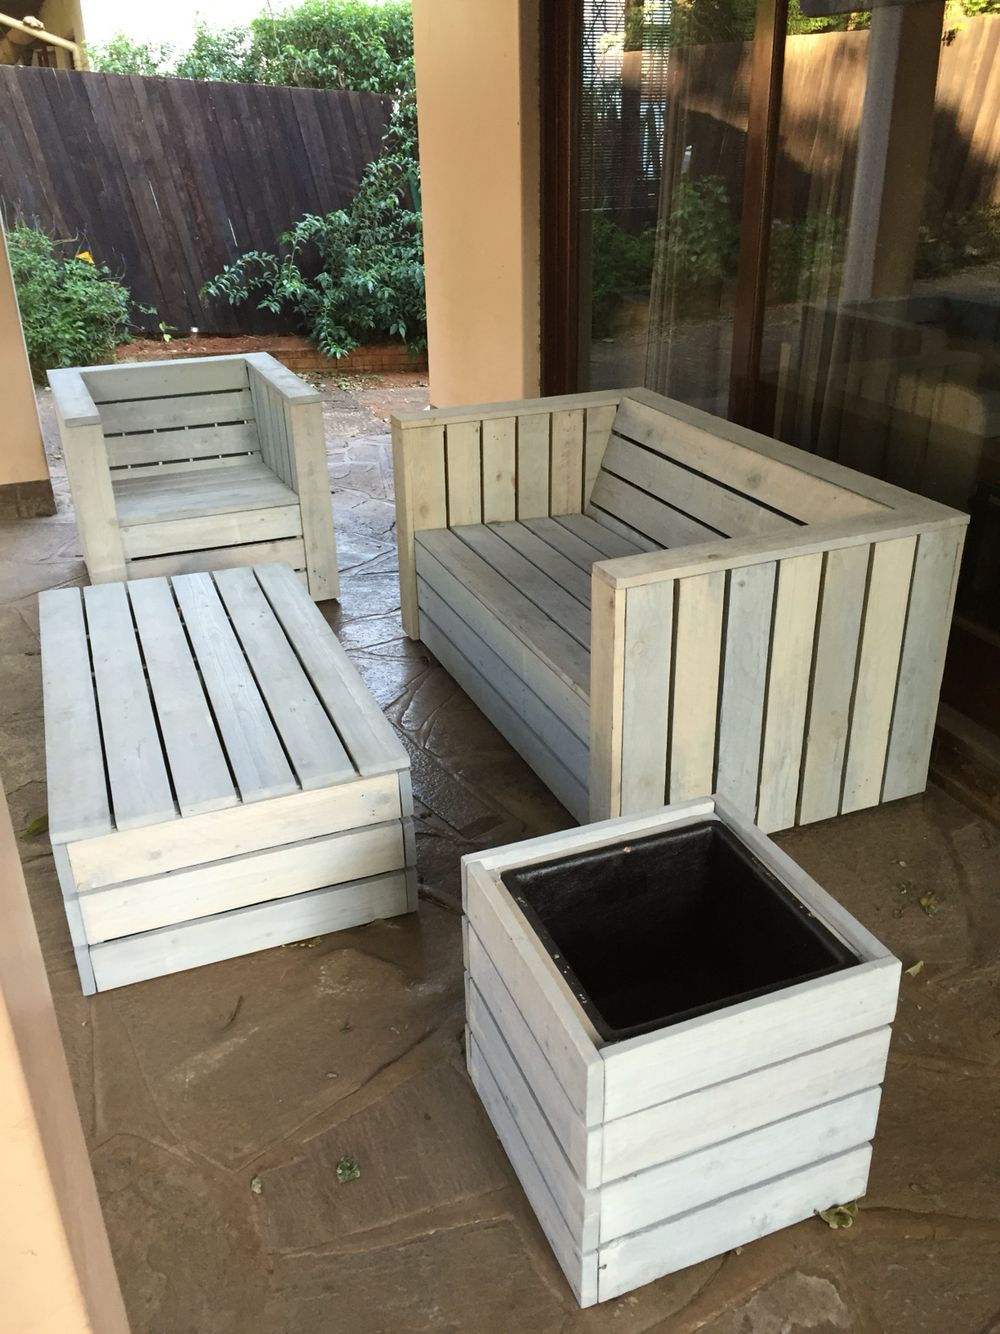 Pallet wood patio furniture set  How To Build A Shed Out Of Pallets     Pallet wood patio furniture set  How To Build A Shed Out Of Pallets